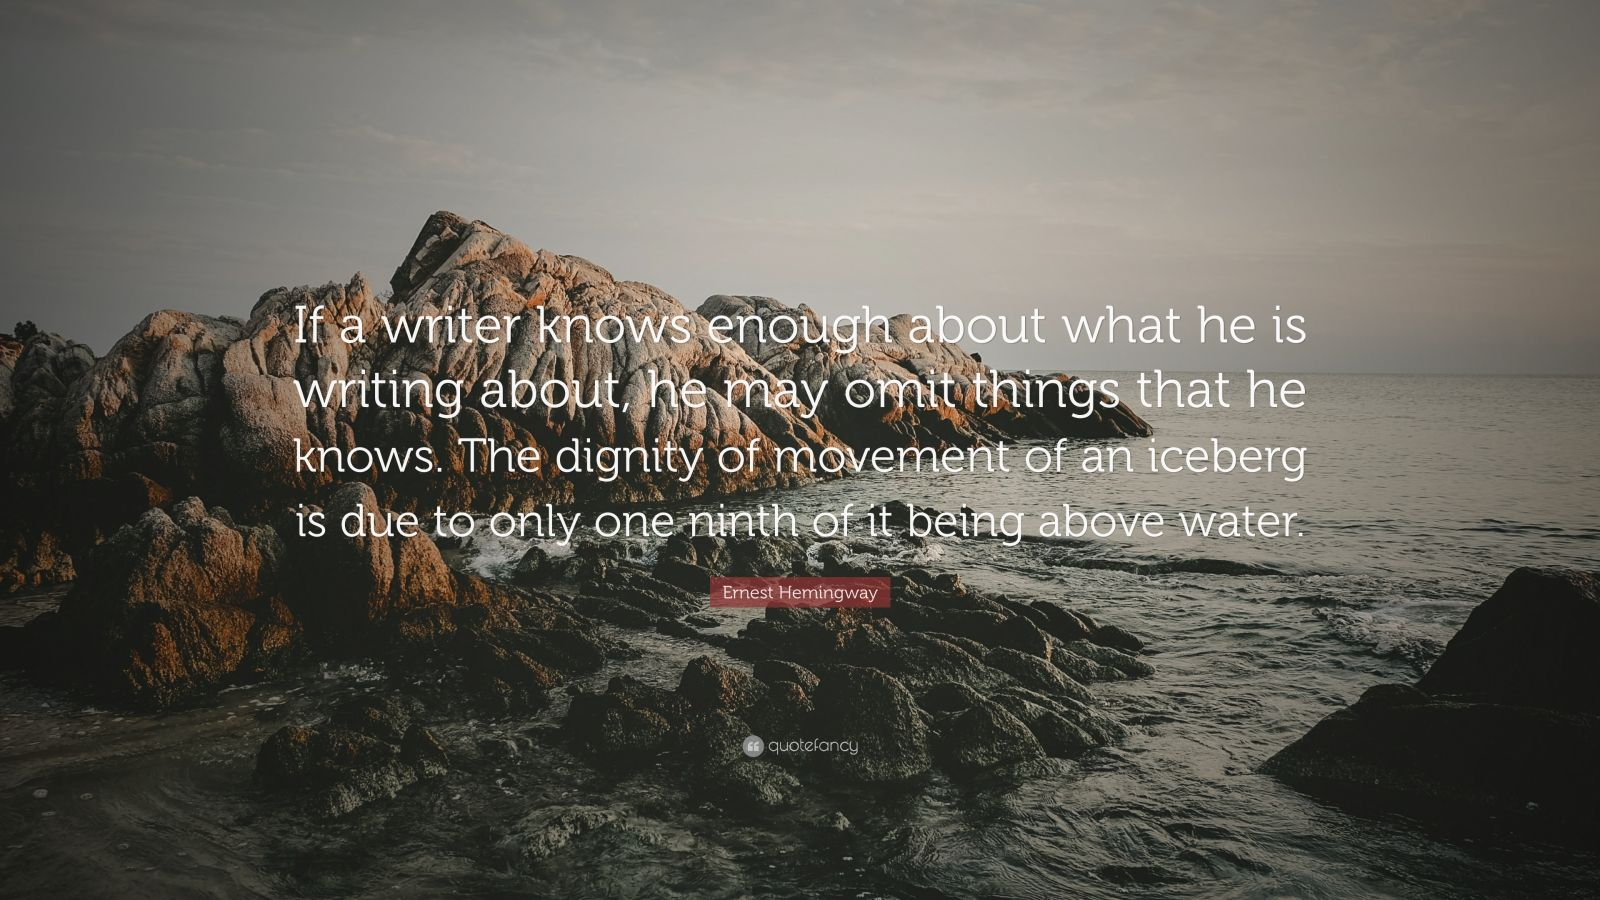 """Ernest Hemingway Quote: """"If a writer knows enough about what he is writing about, he may omit things that he knows. The dignity of movement of an iceberg is due to only one ninth of it being above water."""""""